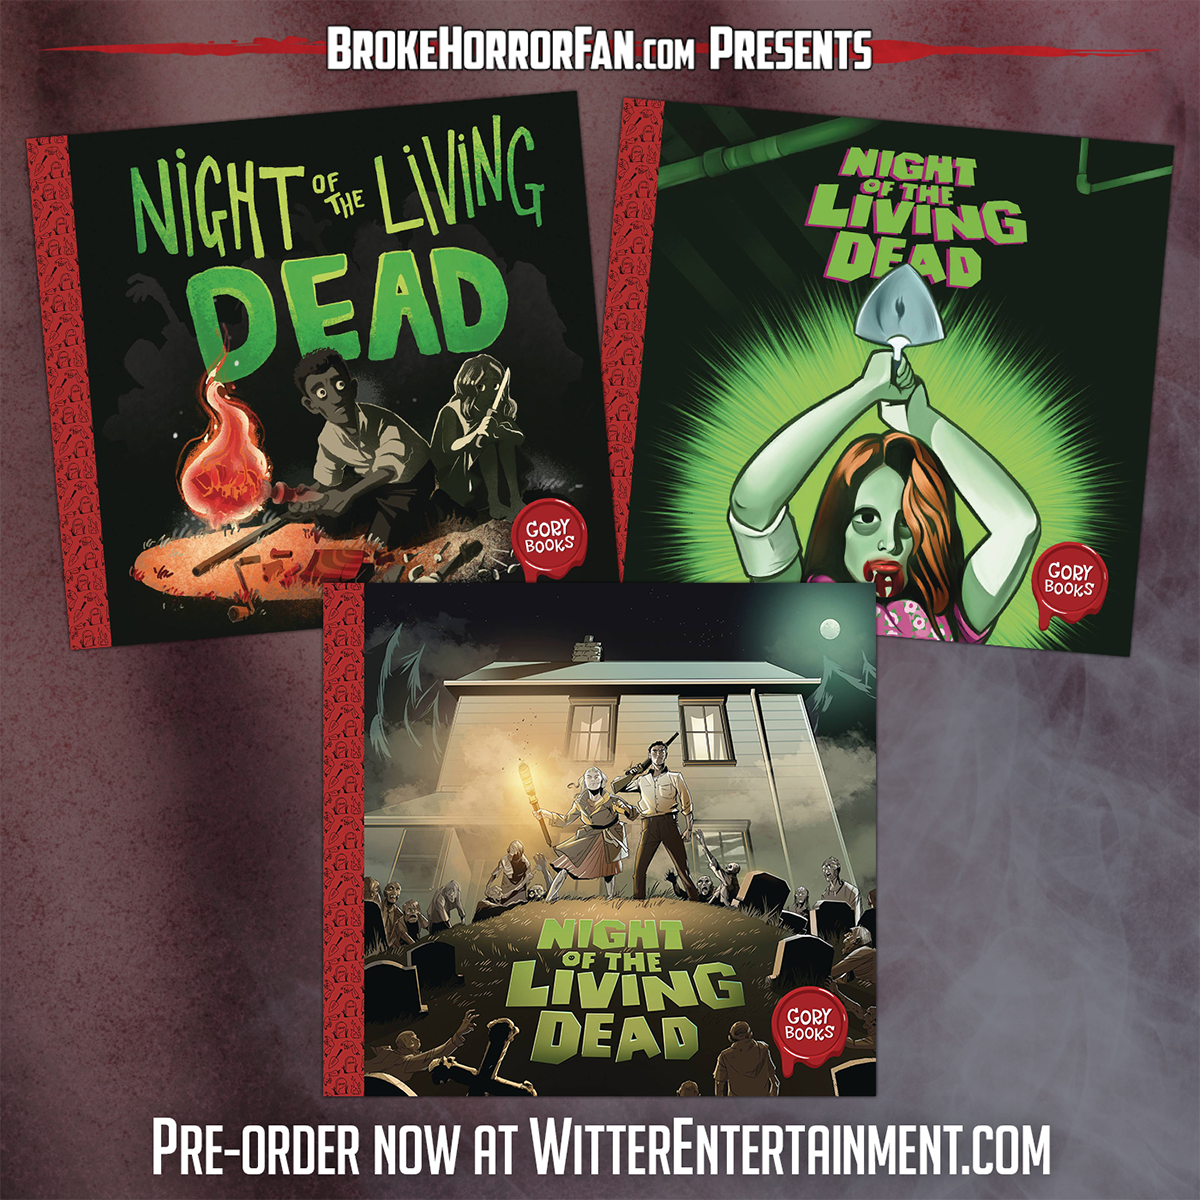 Gory Books are coming, pre-order now!